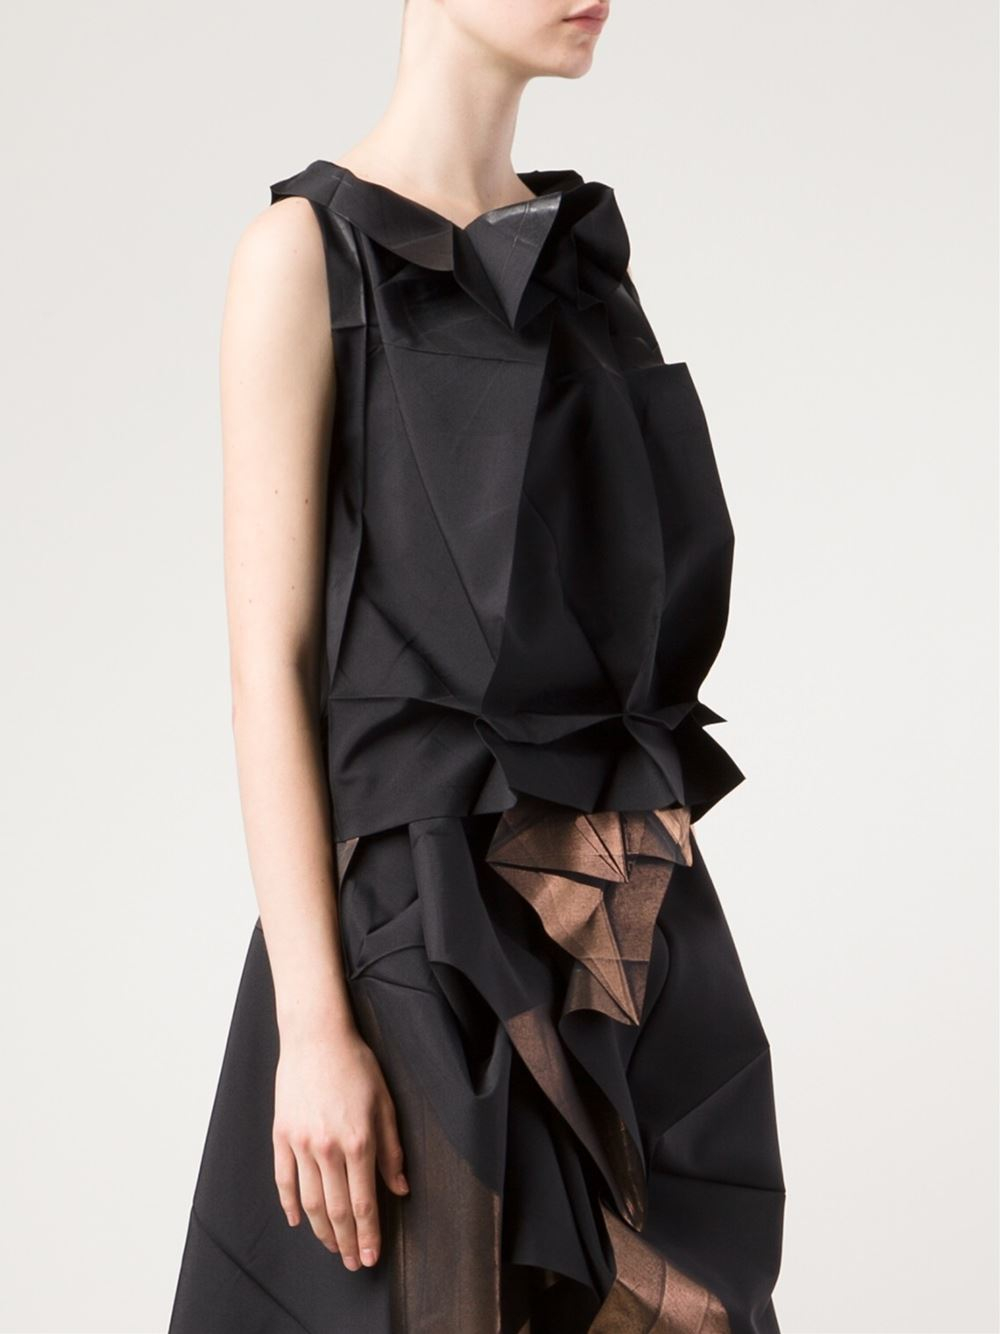 132 Best Images About Xdress On Pinterest: 132 5. Issey Miyake Origami Style Sleeveless Top In